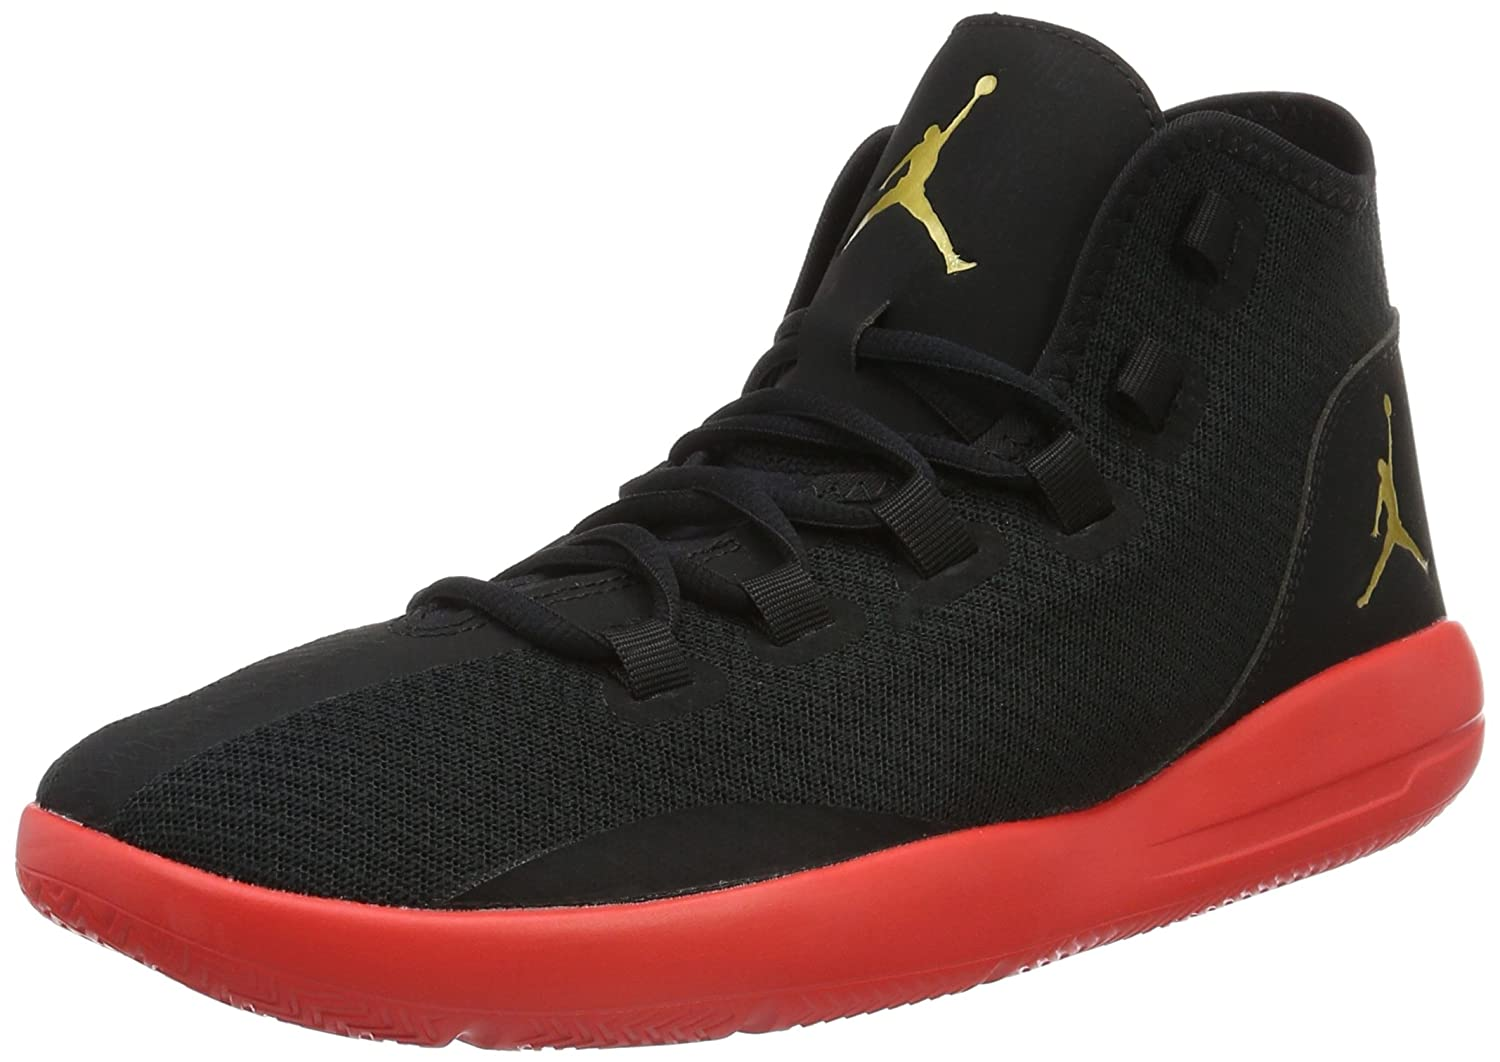 162311dd19a65 Jordan Mens Reveal 11 Black/Infrared 23/Metallic Gold Coin